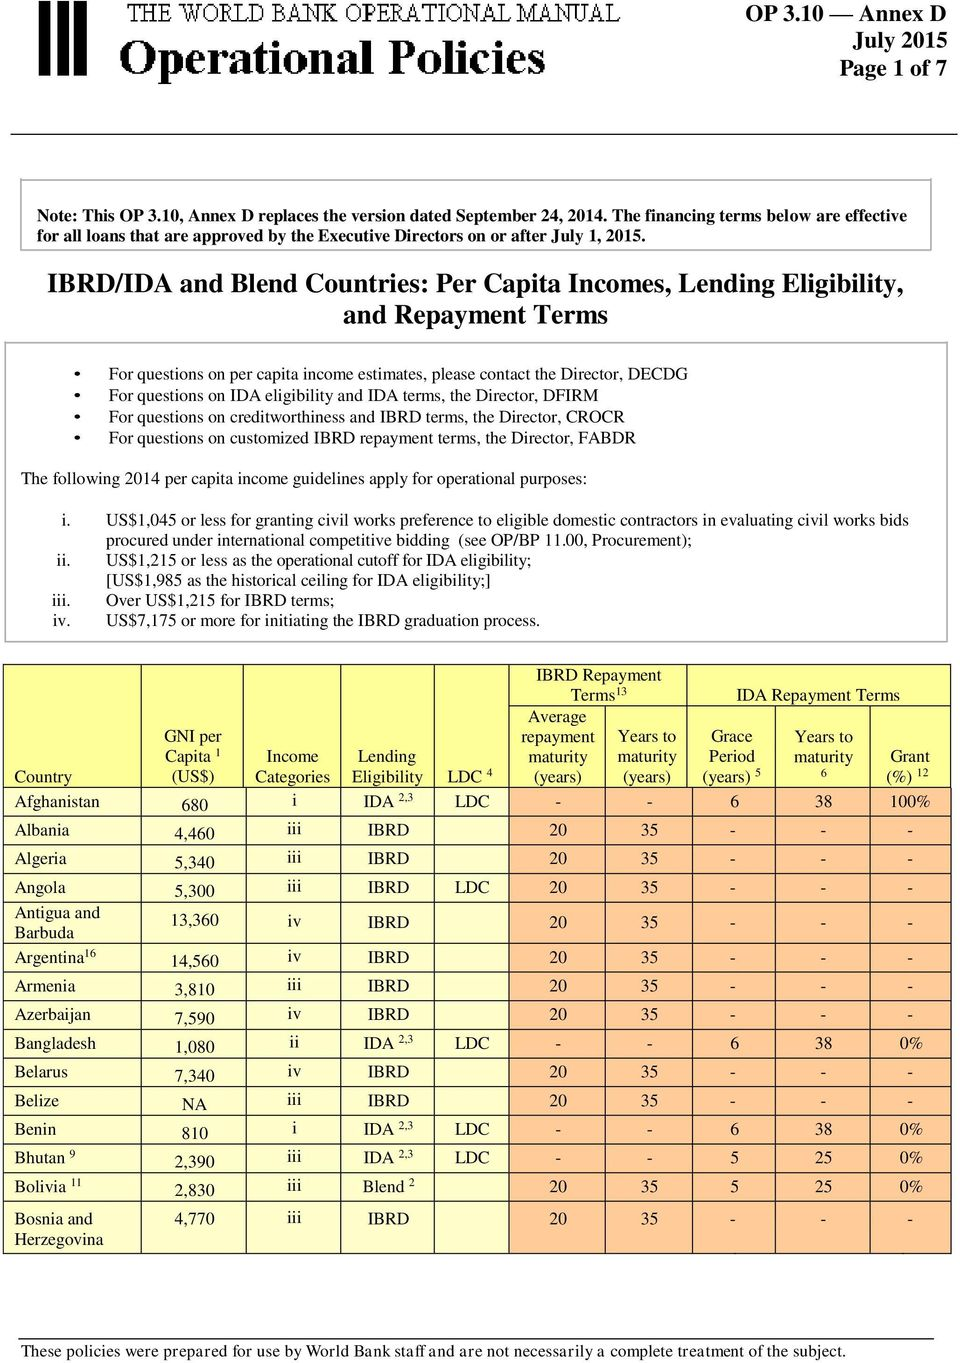 IBRD/IDA and Blend Countries: Per Capita s, Eligibility, and Repayment Terms For questions on per capita income estimates, please contact the Director, DECDG For questions on IDA eligibility and IDA